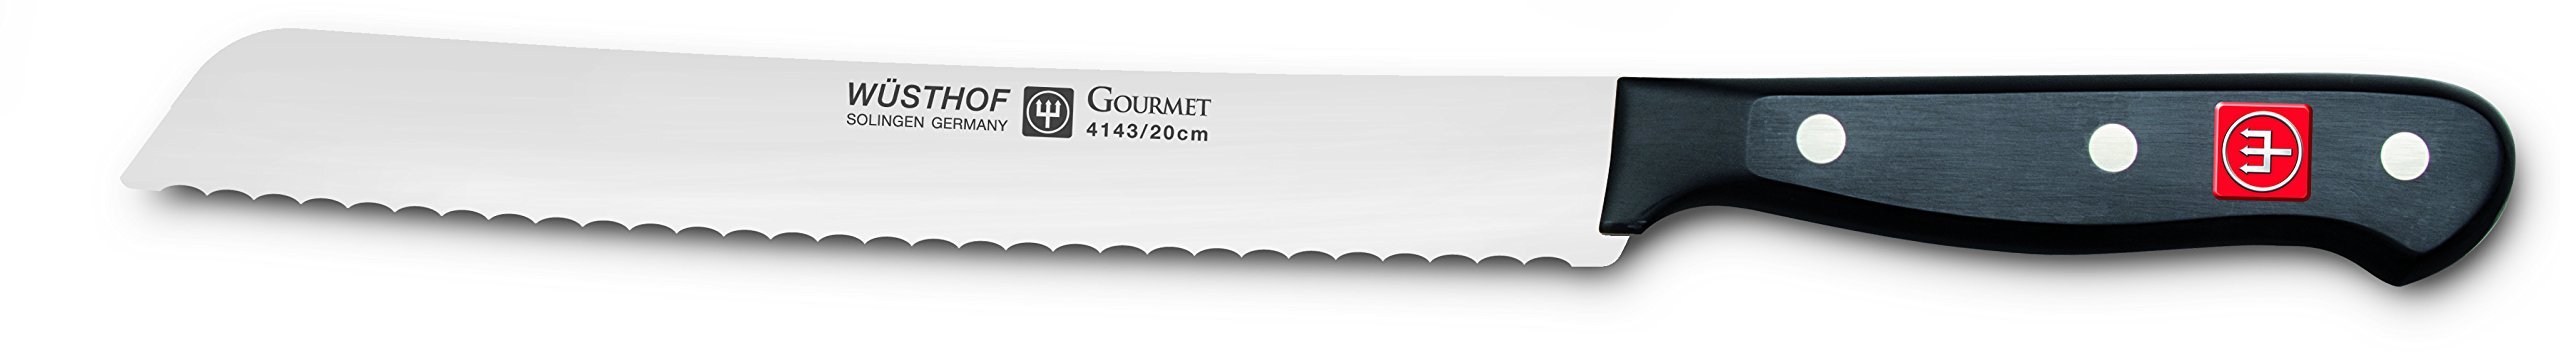 Wusthof Gourmet 8'' Bread Knife